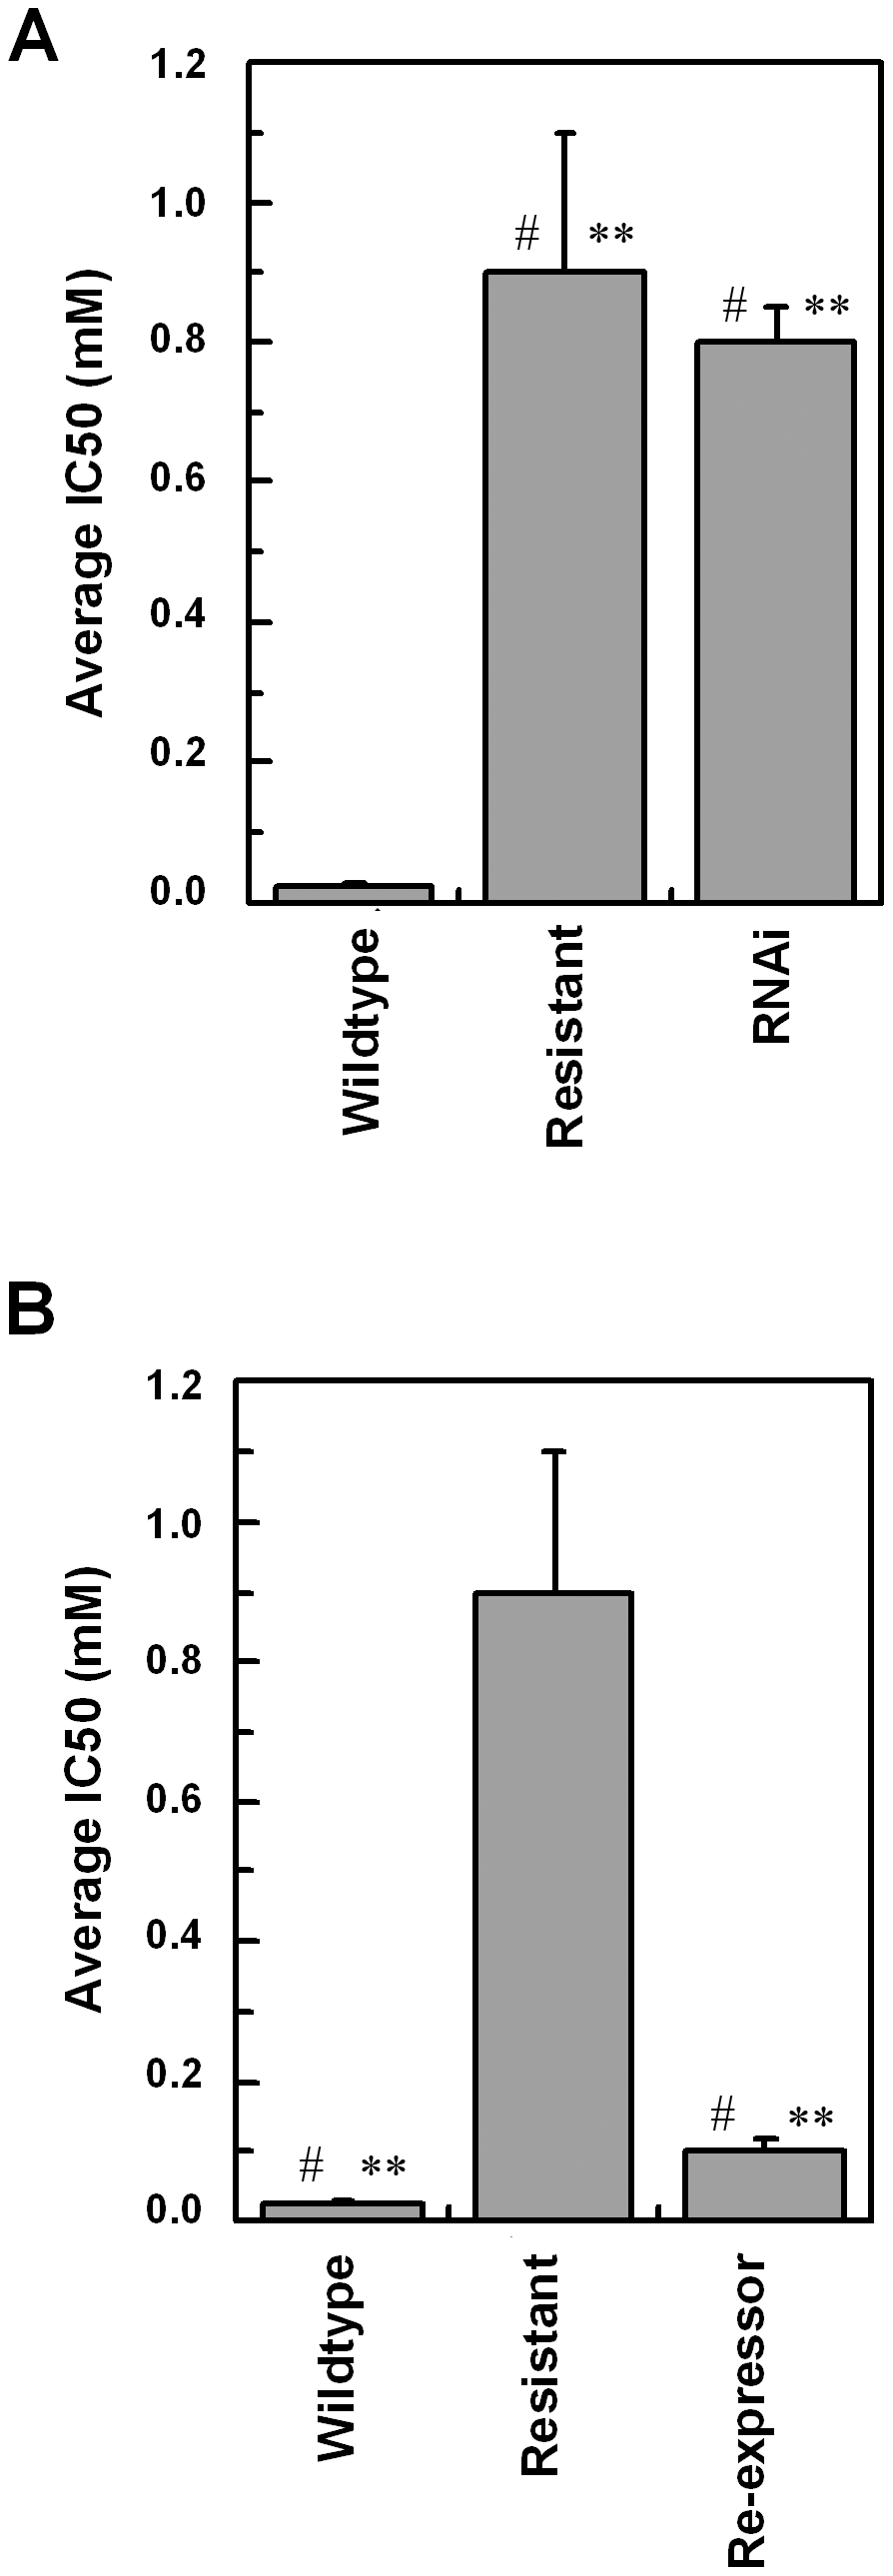 RNAi and re-expression of TbAAT6.